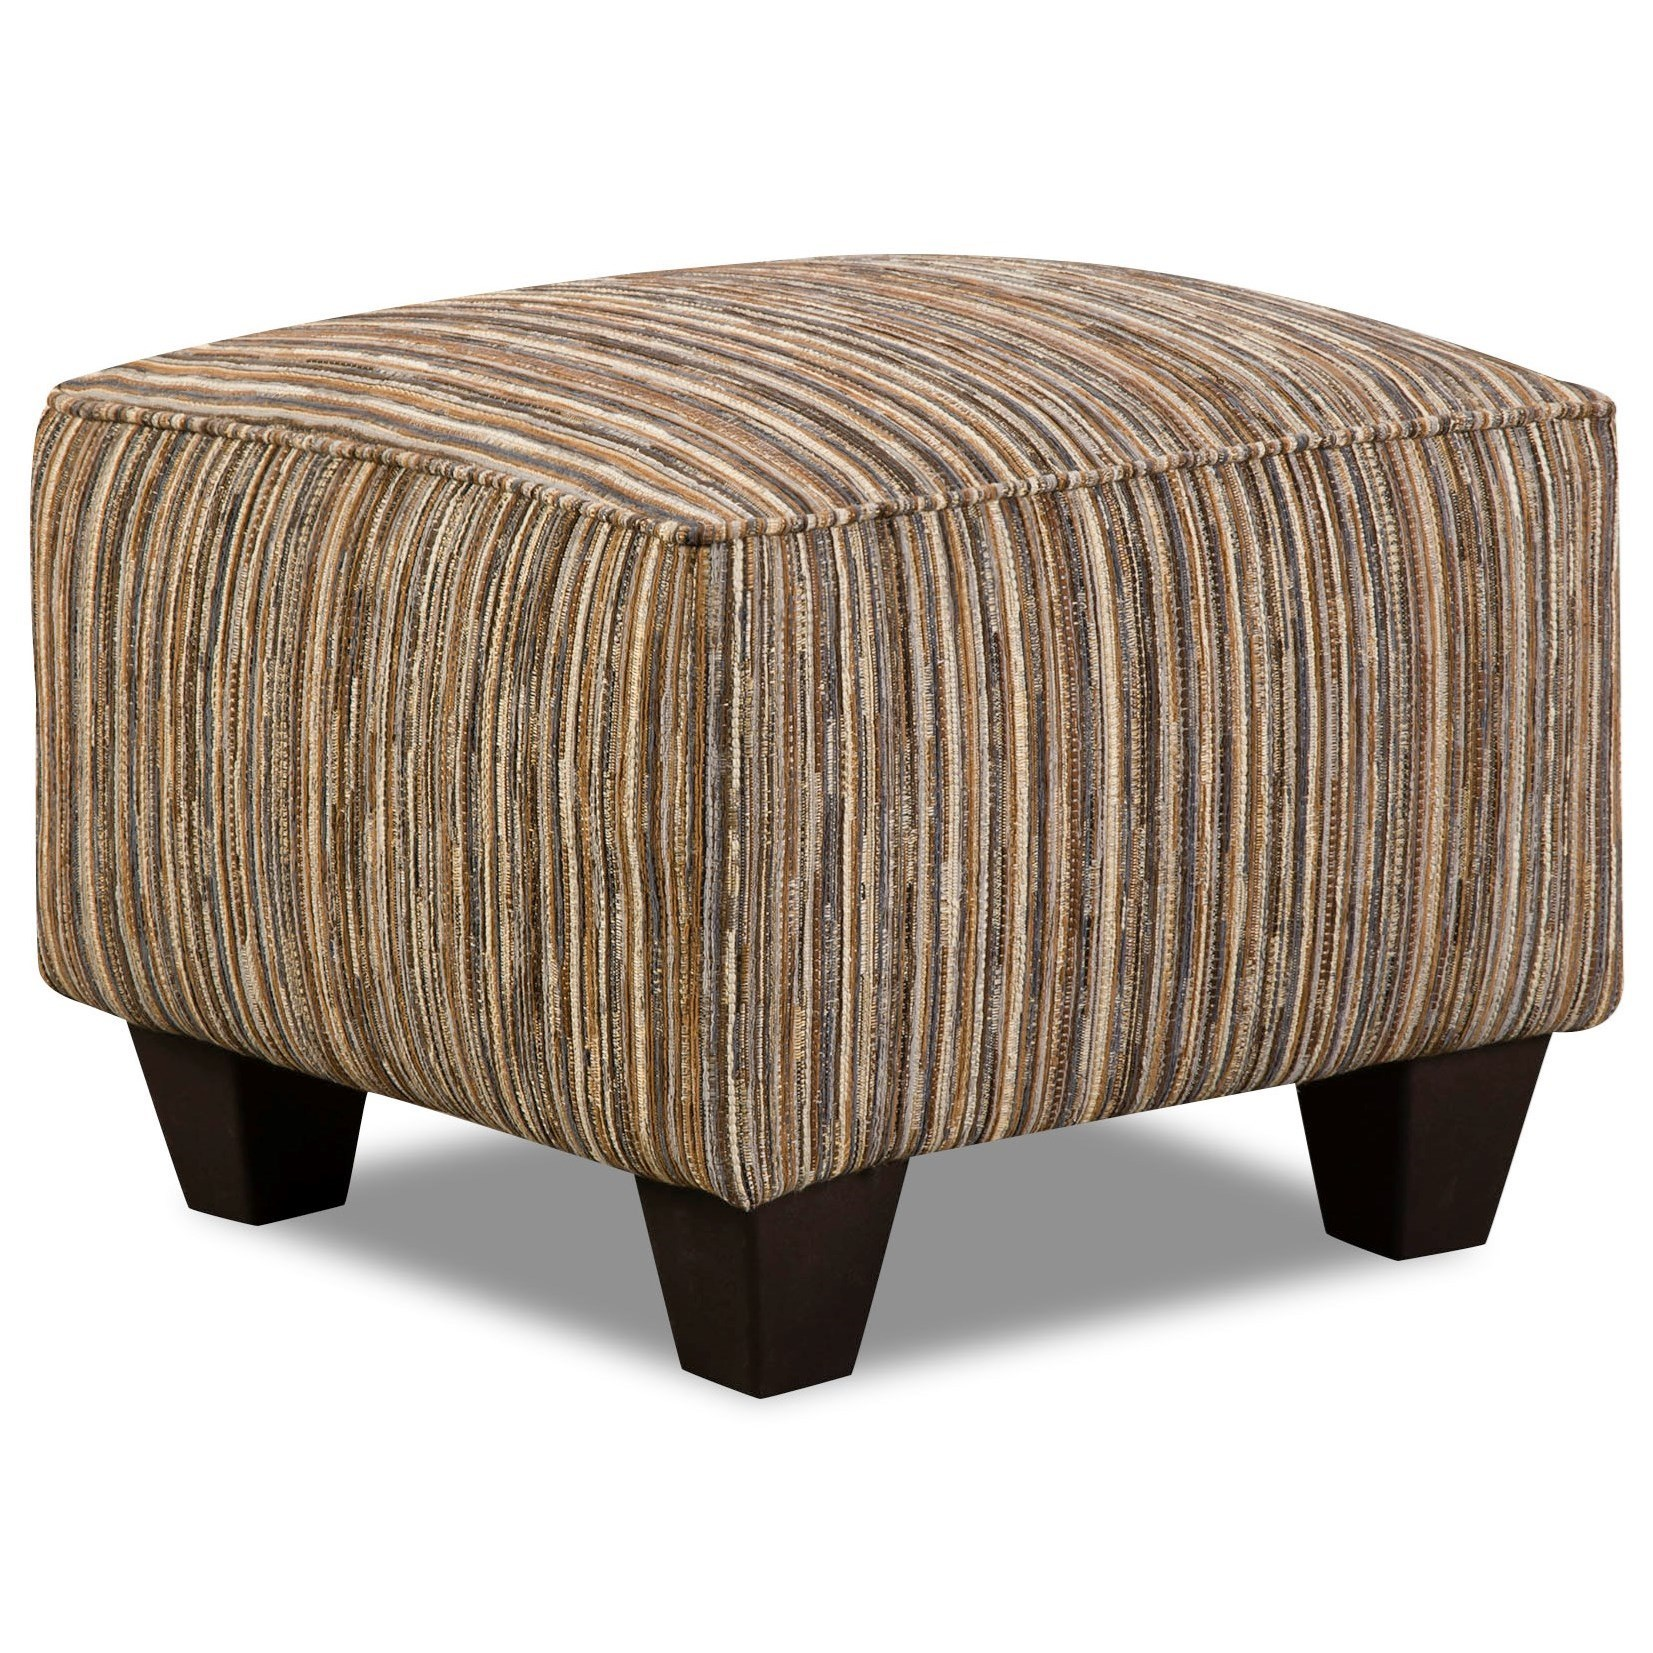 29D0 Accent Ottoman by Corinthian at Story & Lee Furniture